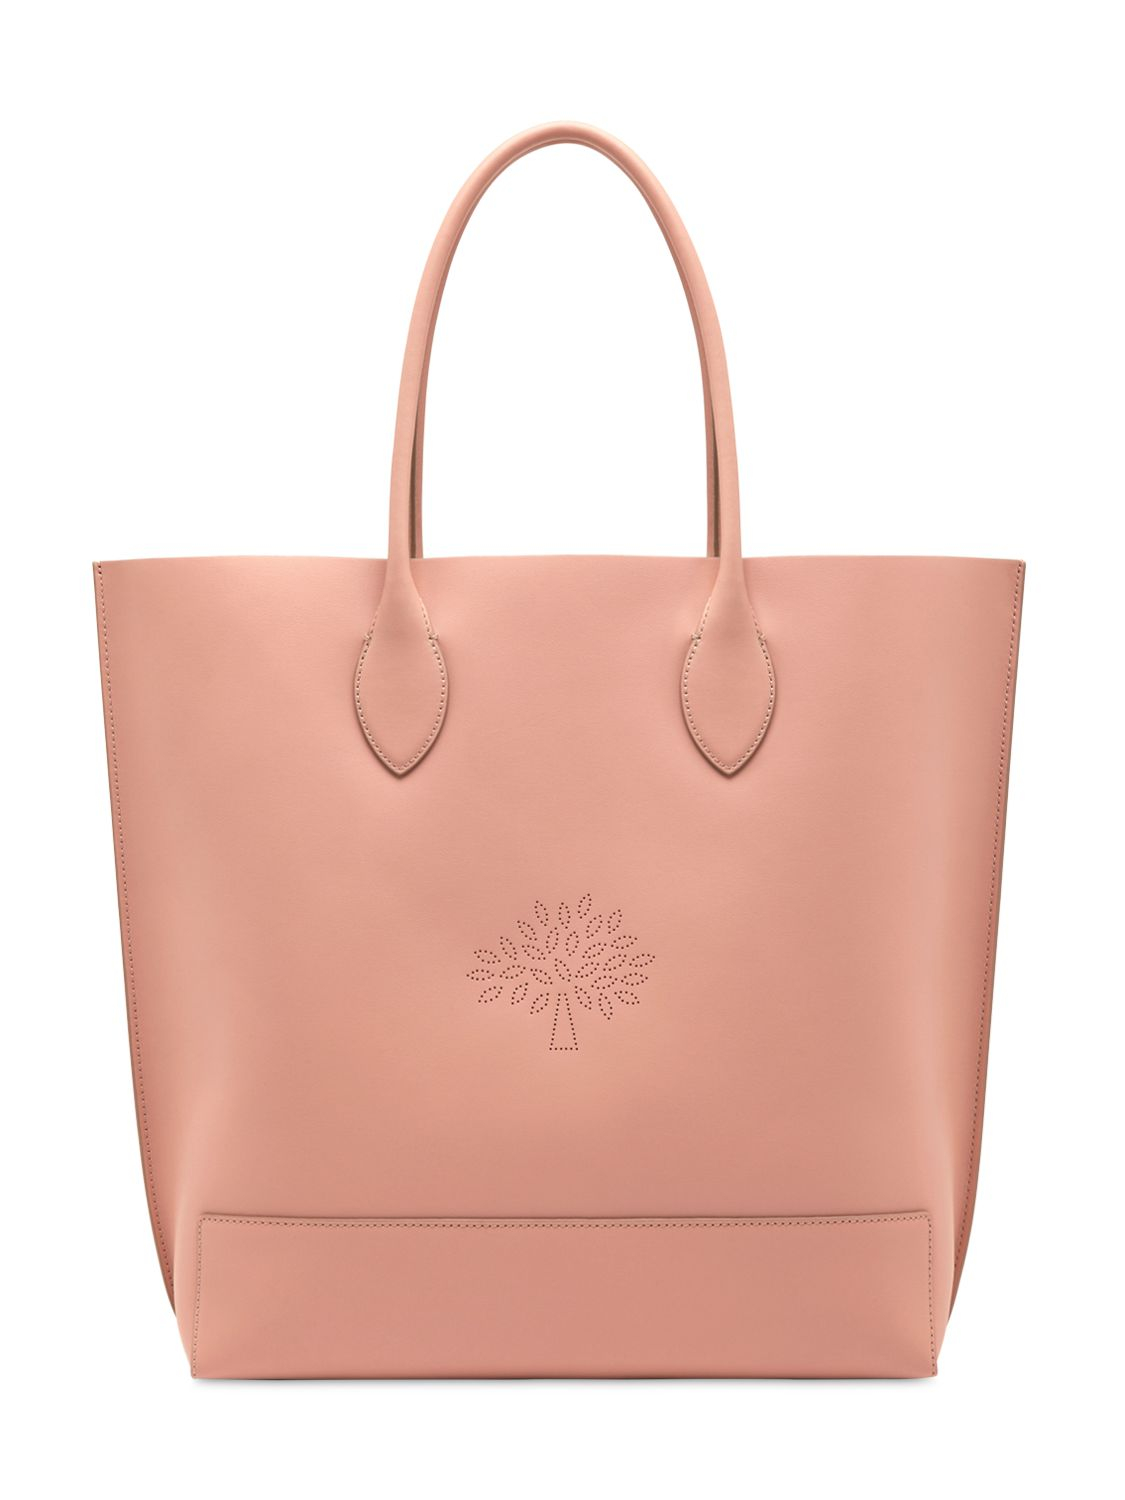 lyst mulberry blossom nappa leather tote bag in pink. Black Bedroom Furniture Sets. Home Design Ideas